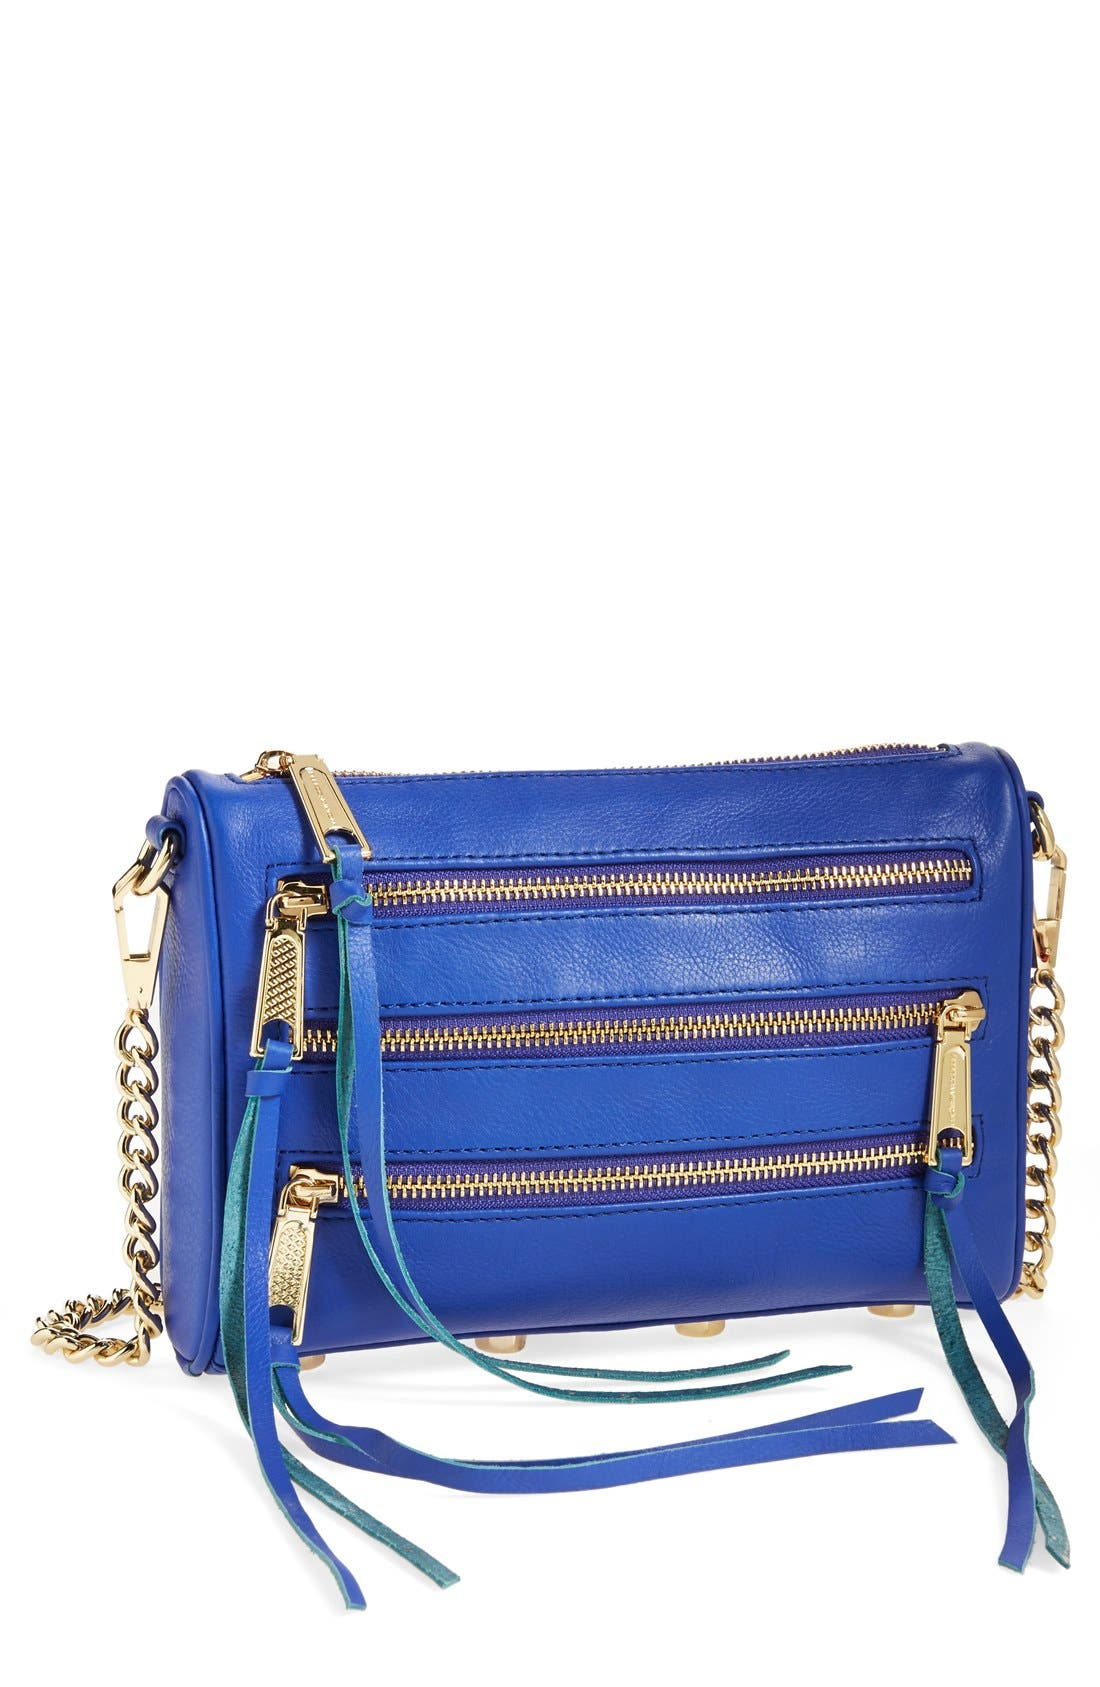 'Mini 5 Zip' Convertible Crossbody Bag,                             Main thumbnail 1, color,                             401